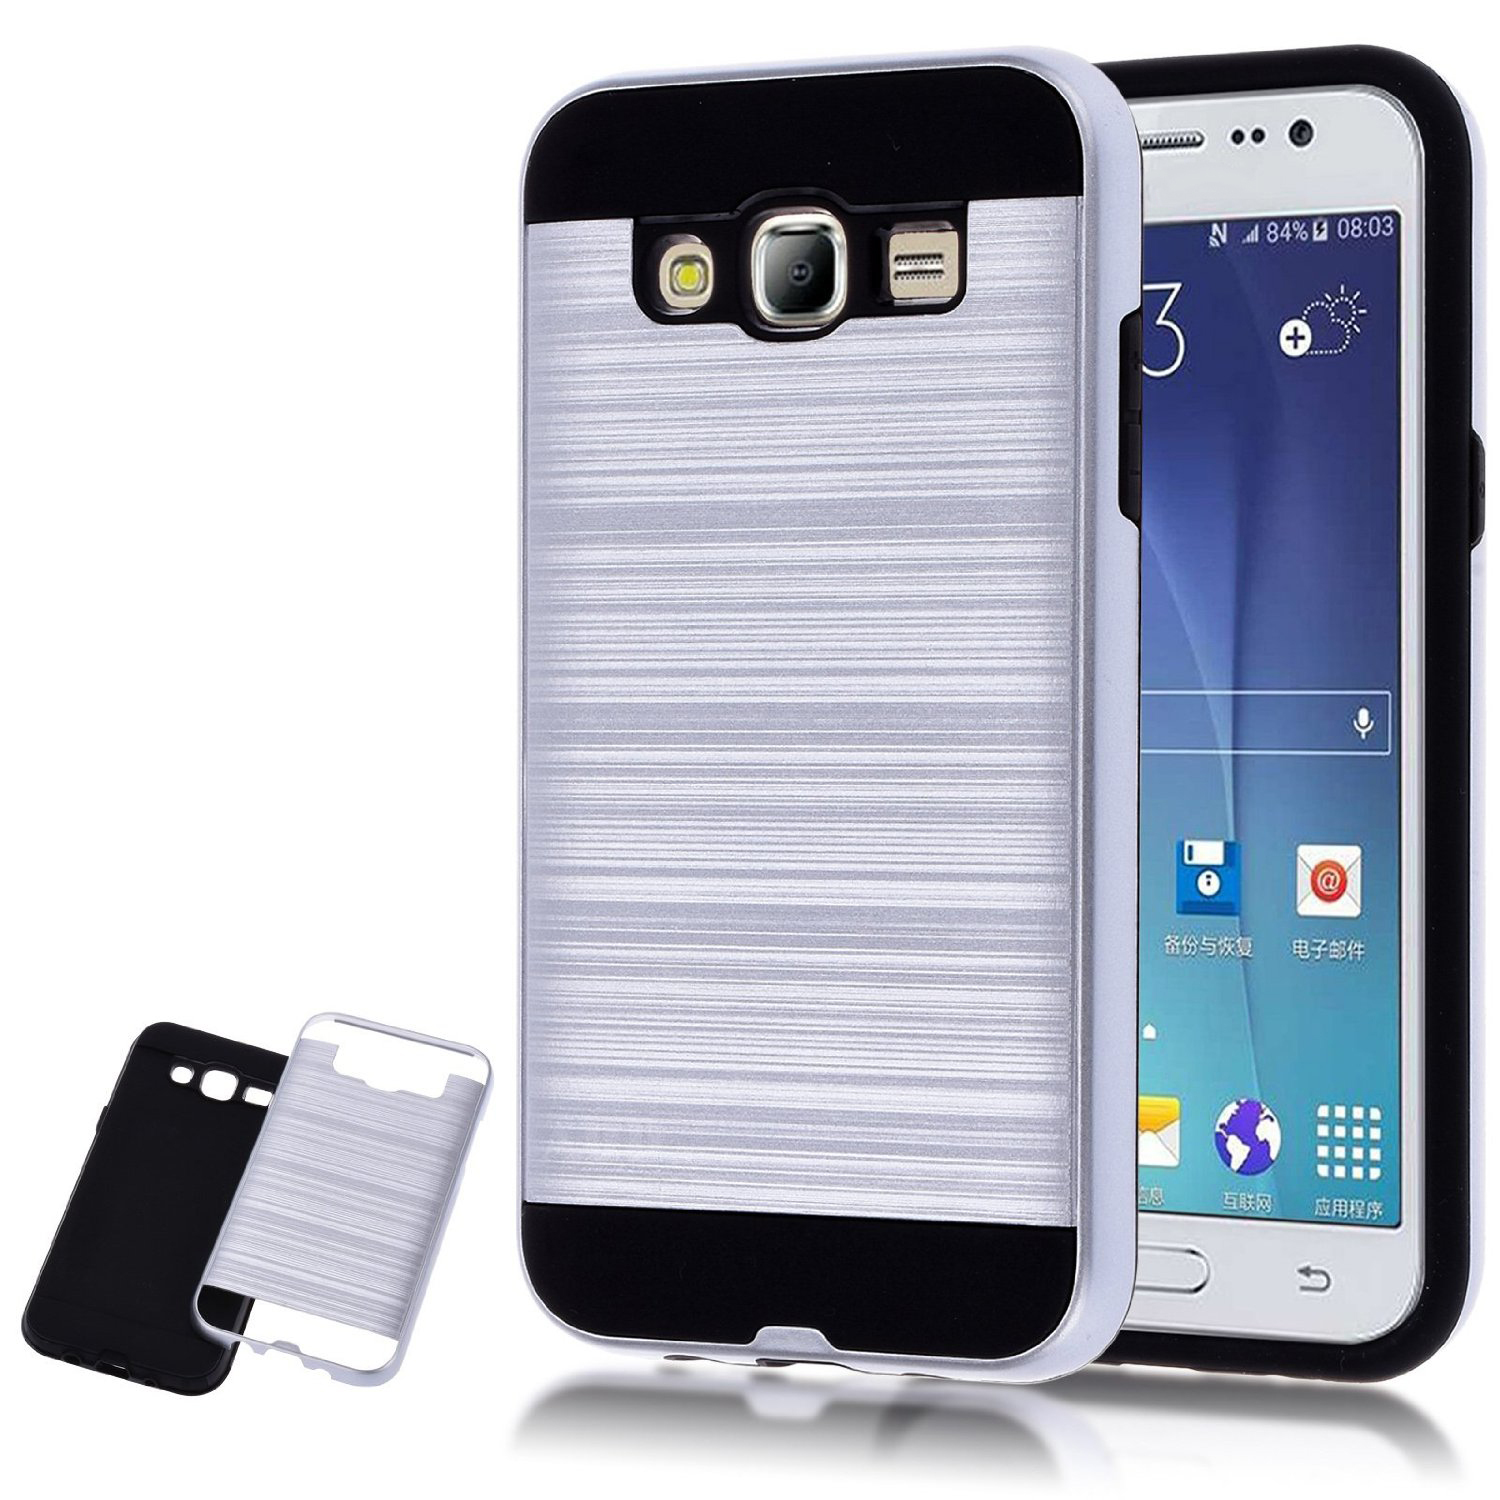 Ture hybrid armor dual layer protective case for samsung galaxy j7 j700 white p20160722144414102